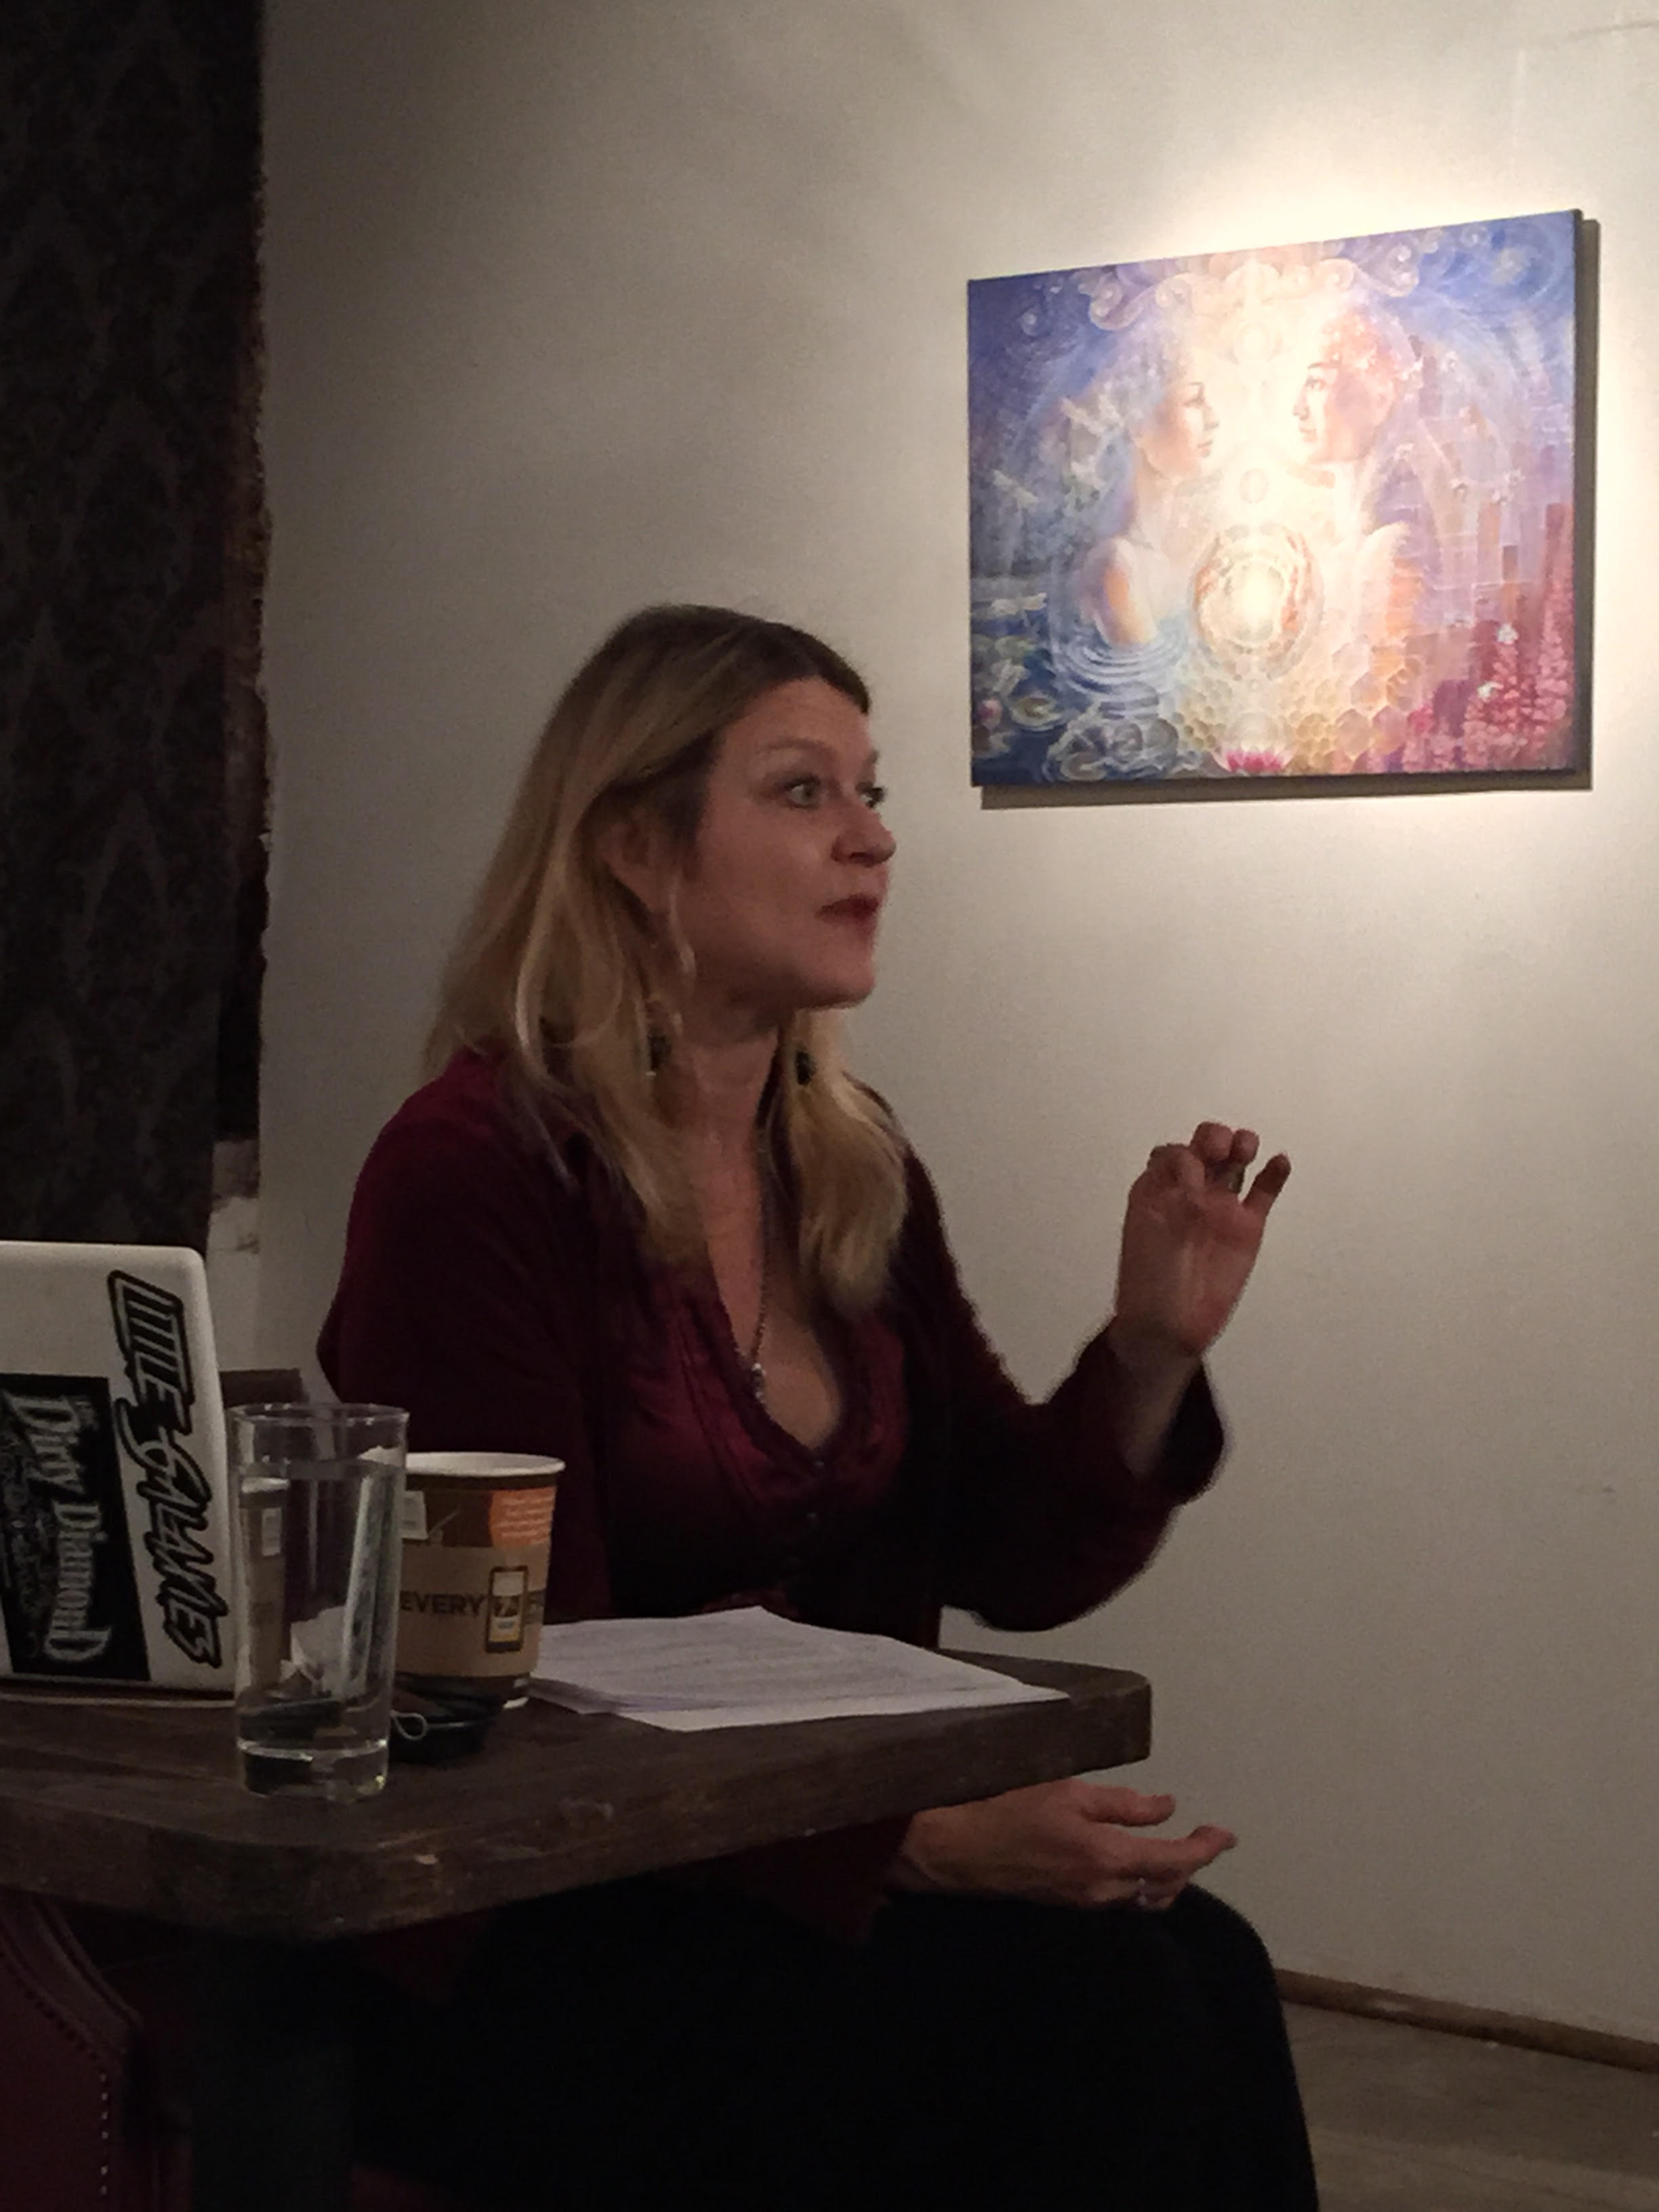 Psychedelic Awareness Salon - Aware Project: Rethinking Psychedelics